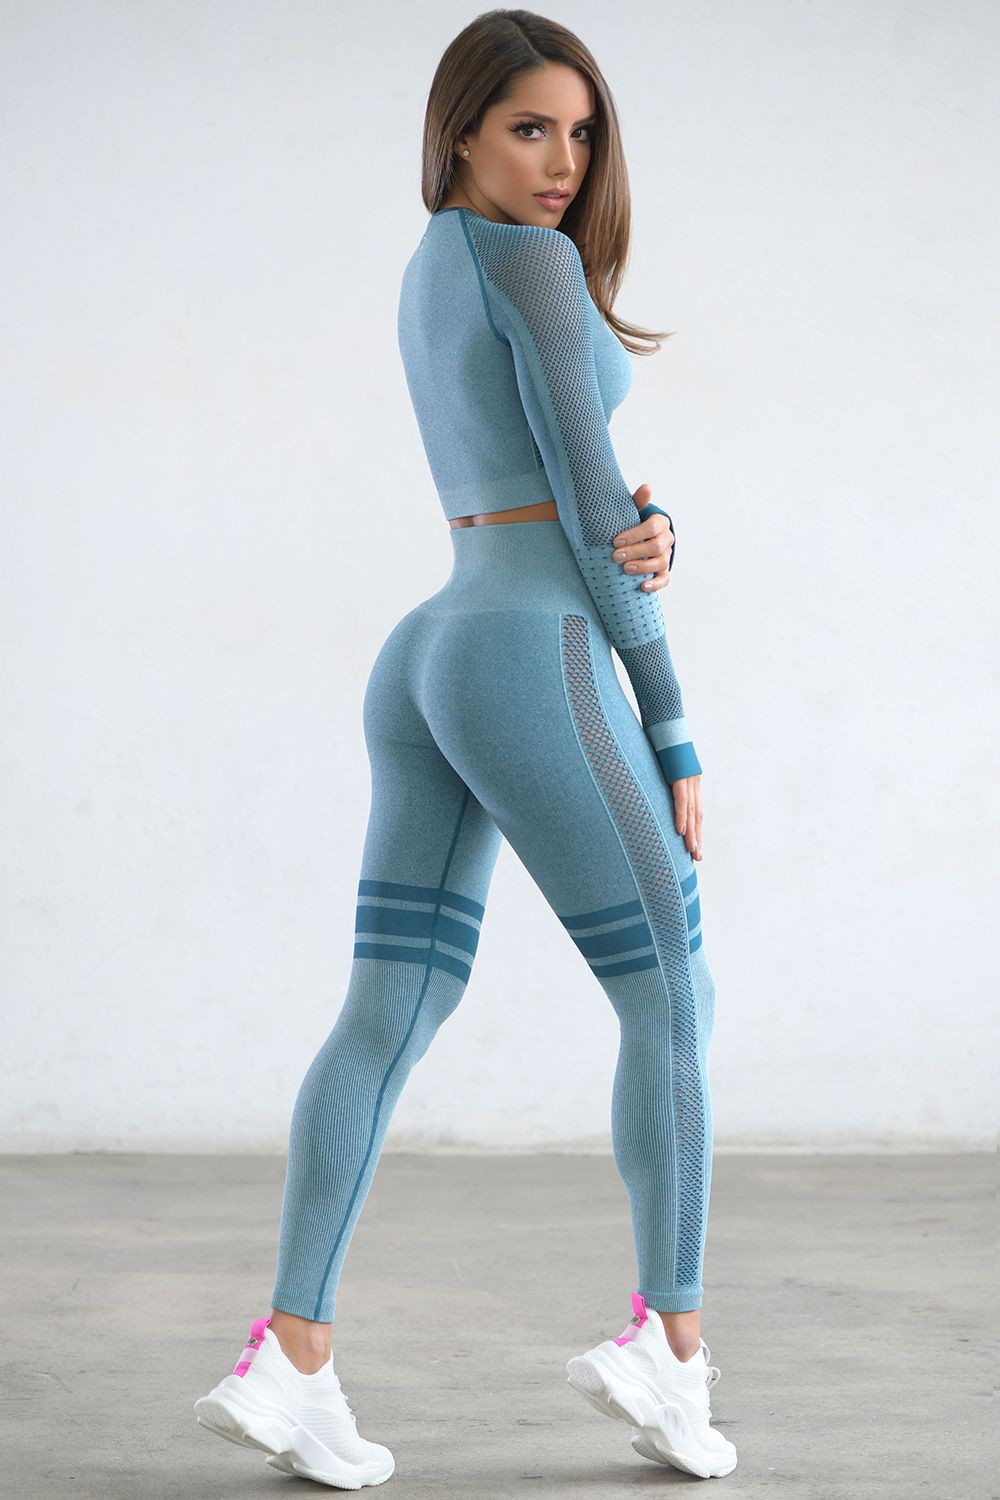 One should see these seamless gym tights, Yoga pants